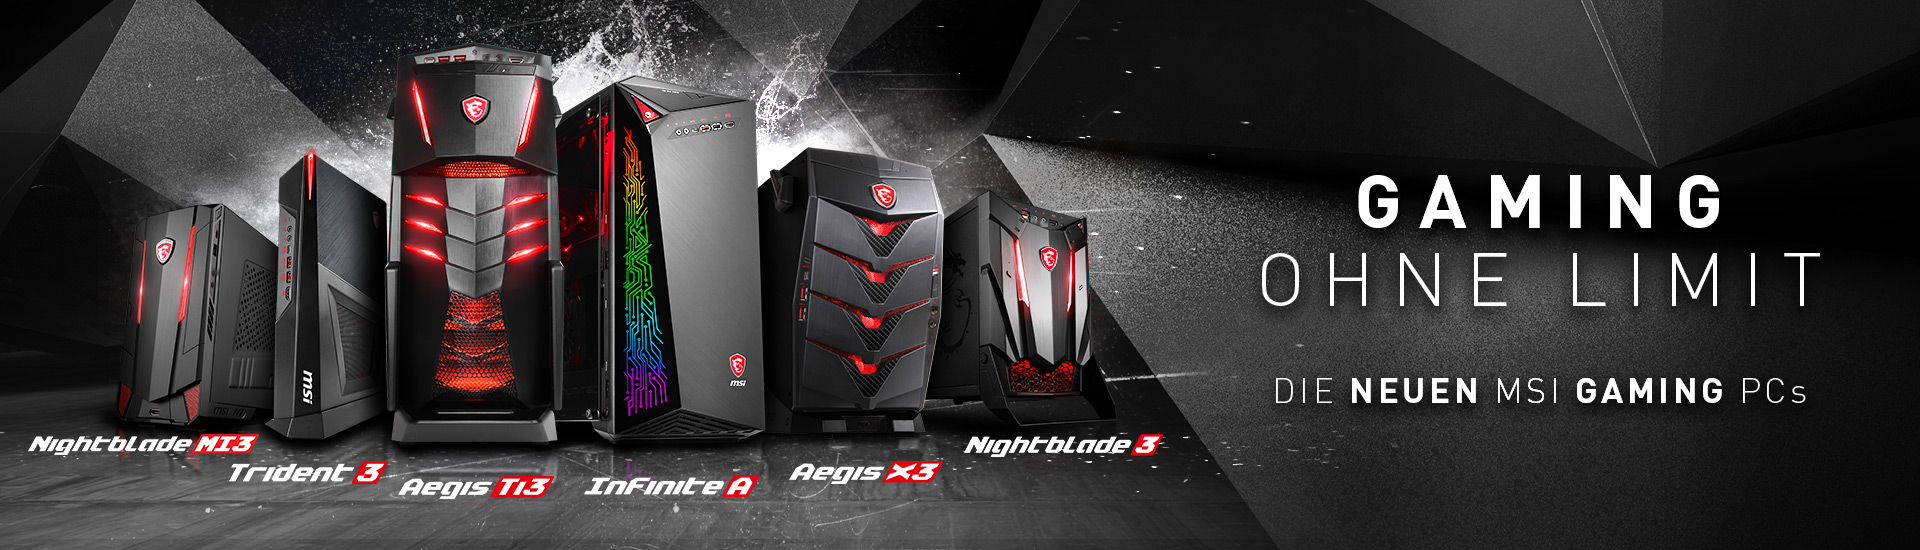 Gaming PC Line-up